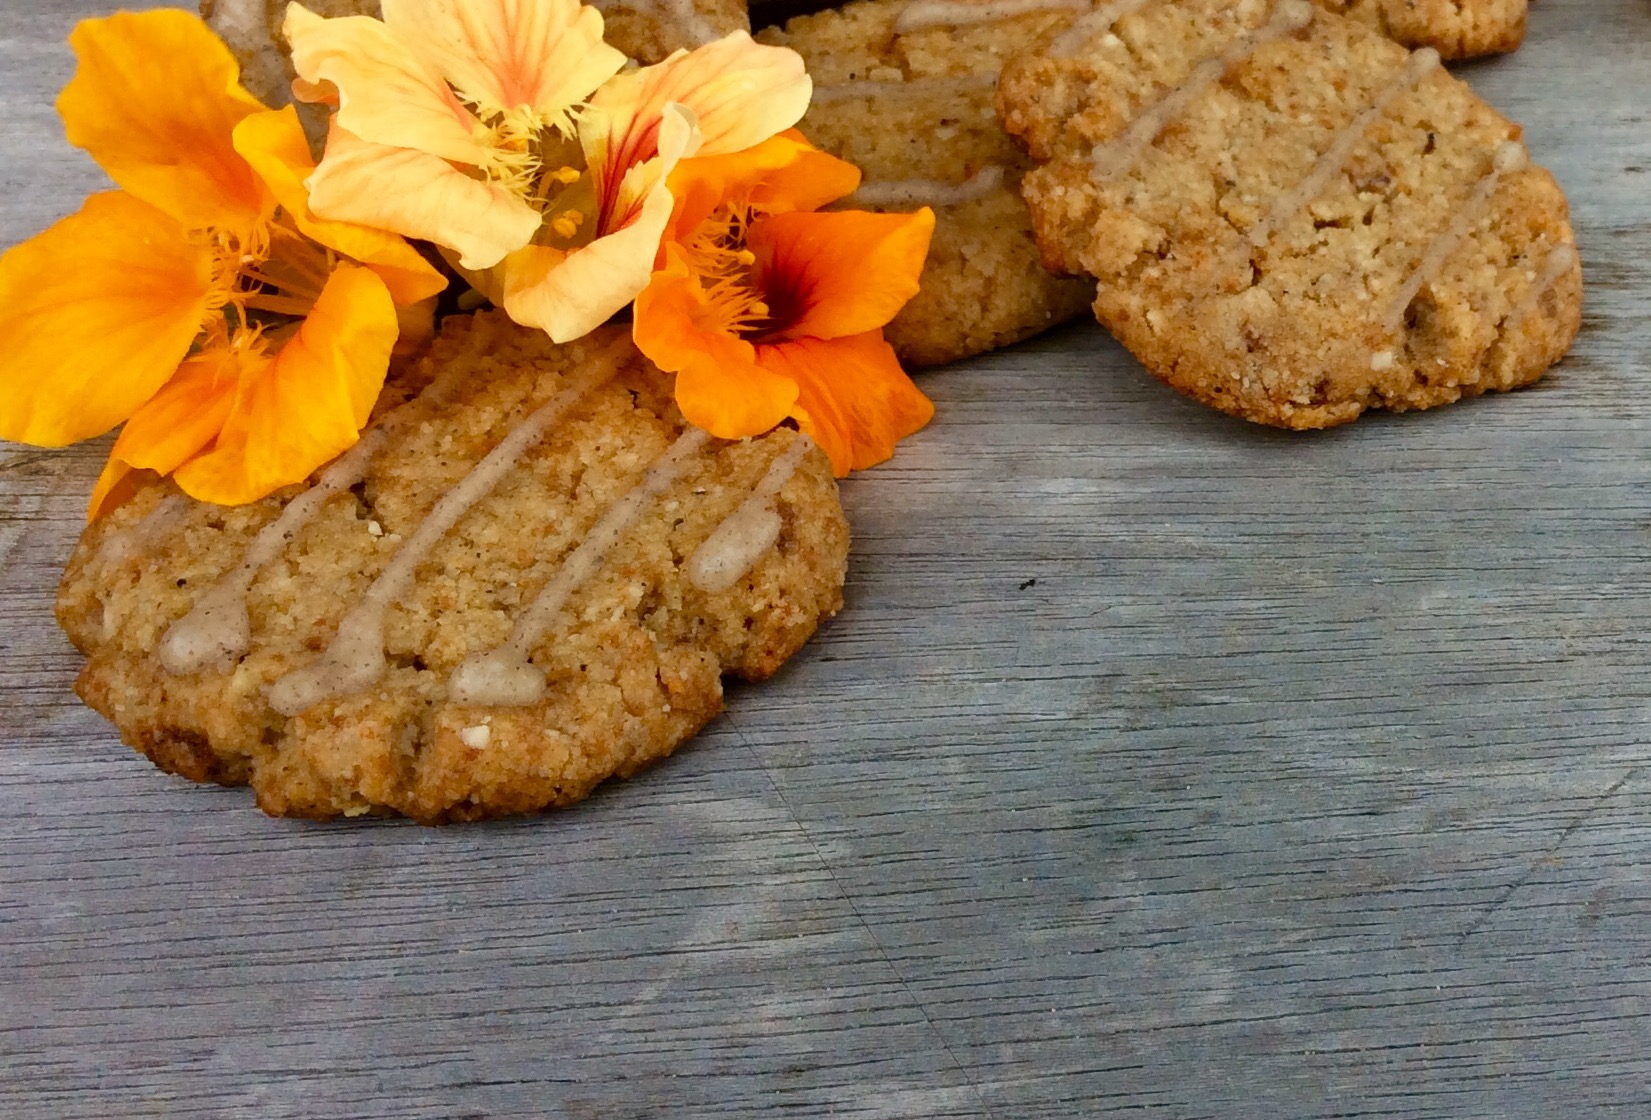 Gluten Free, Vegan, Chewy Tahini Cardamom Cookies from the Homecooked with Love food blog